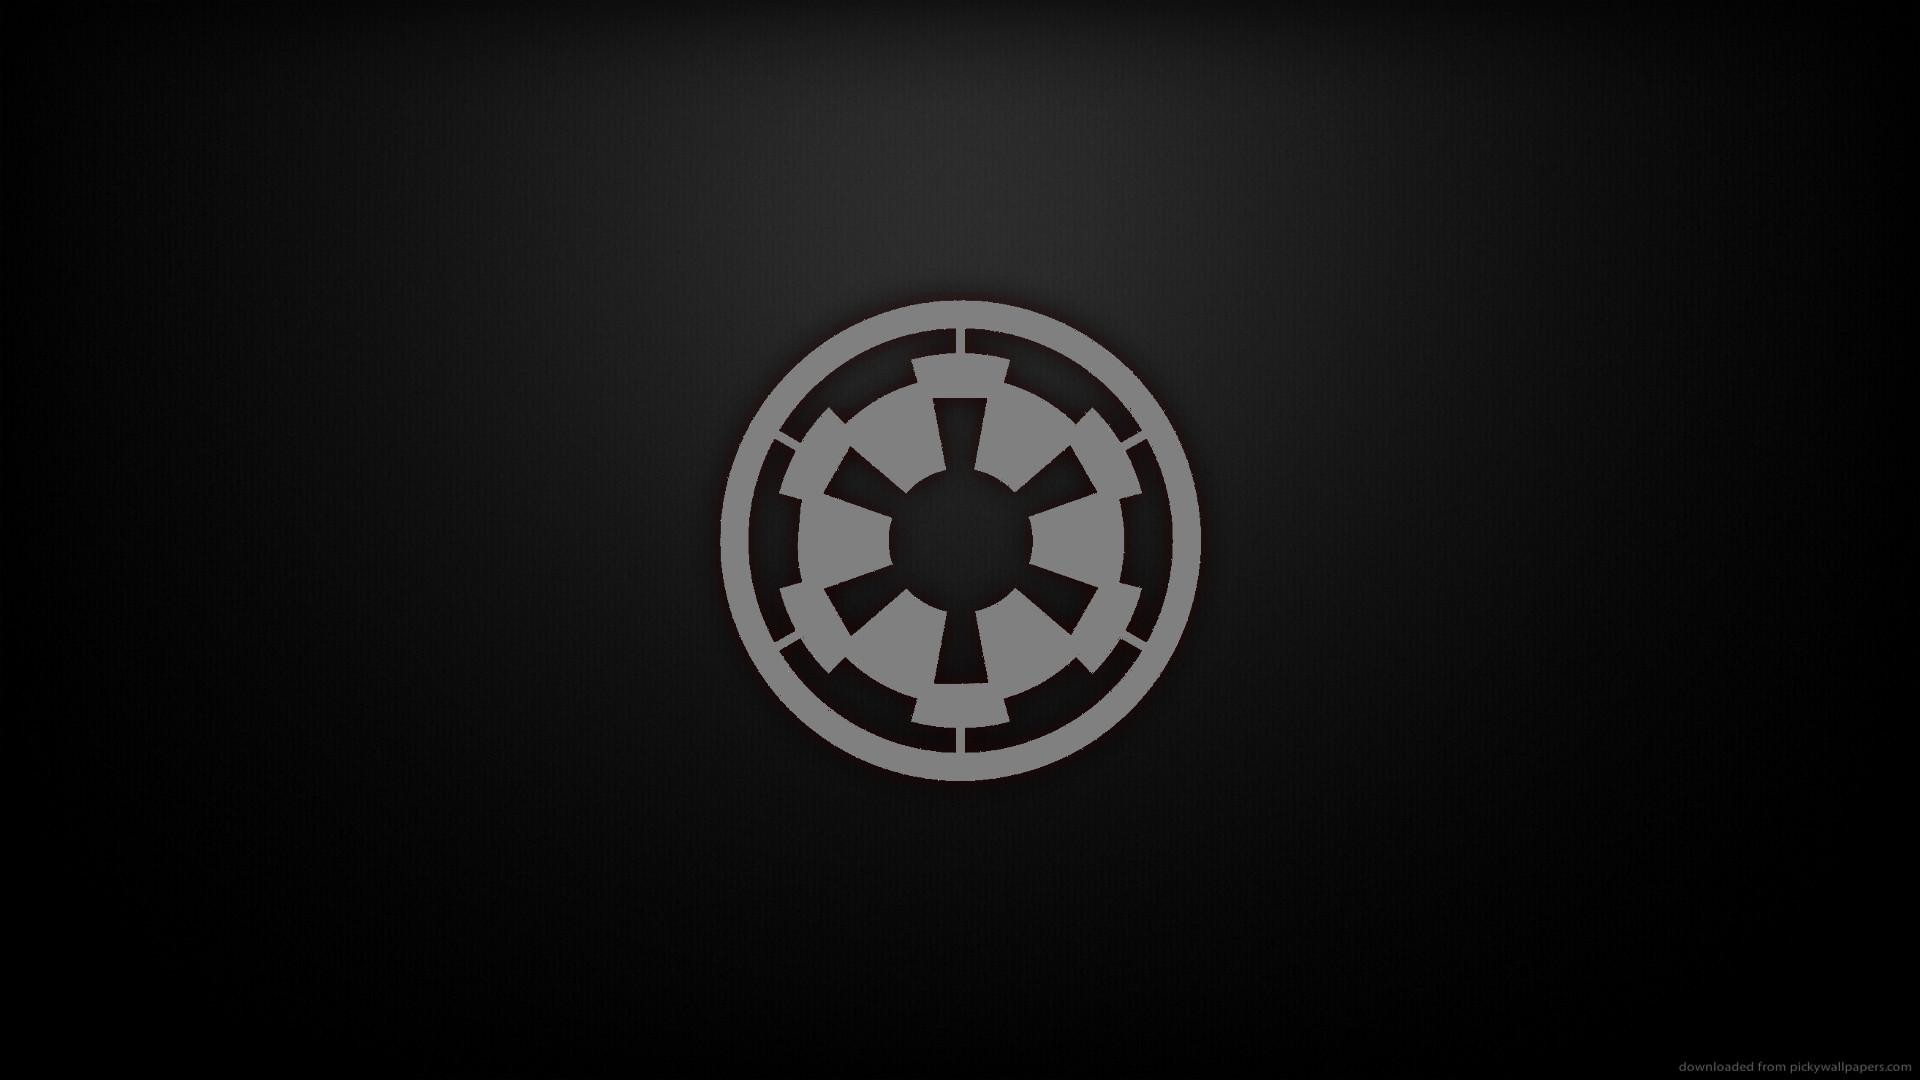 1920x1080 ... star wars imperial symbol wallpaper by hd wallpapers daily ...